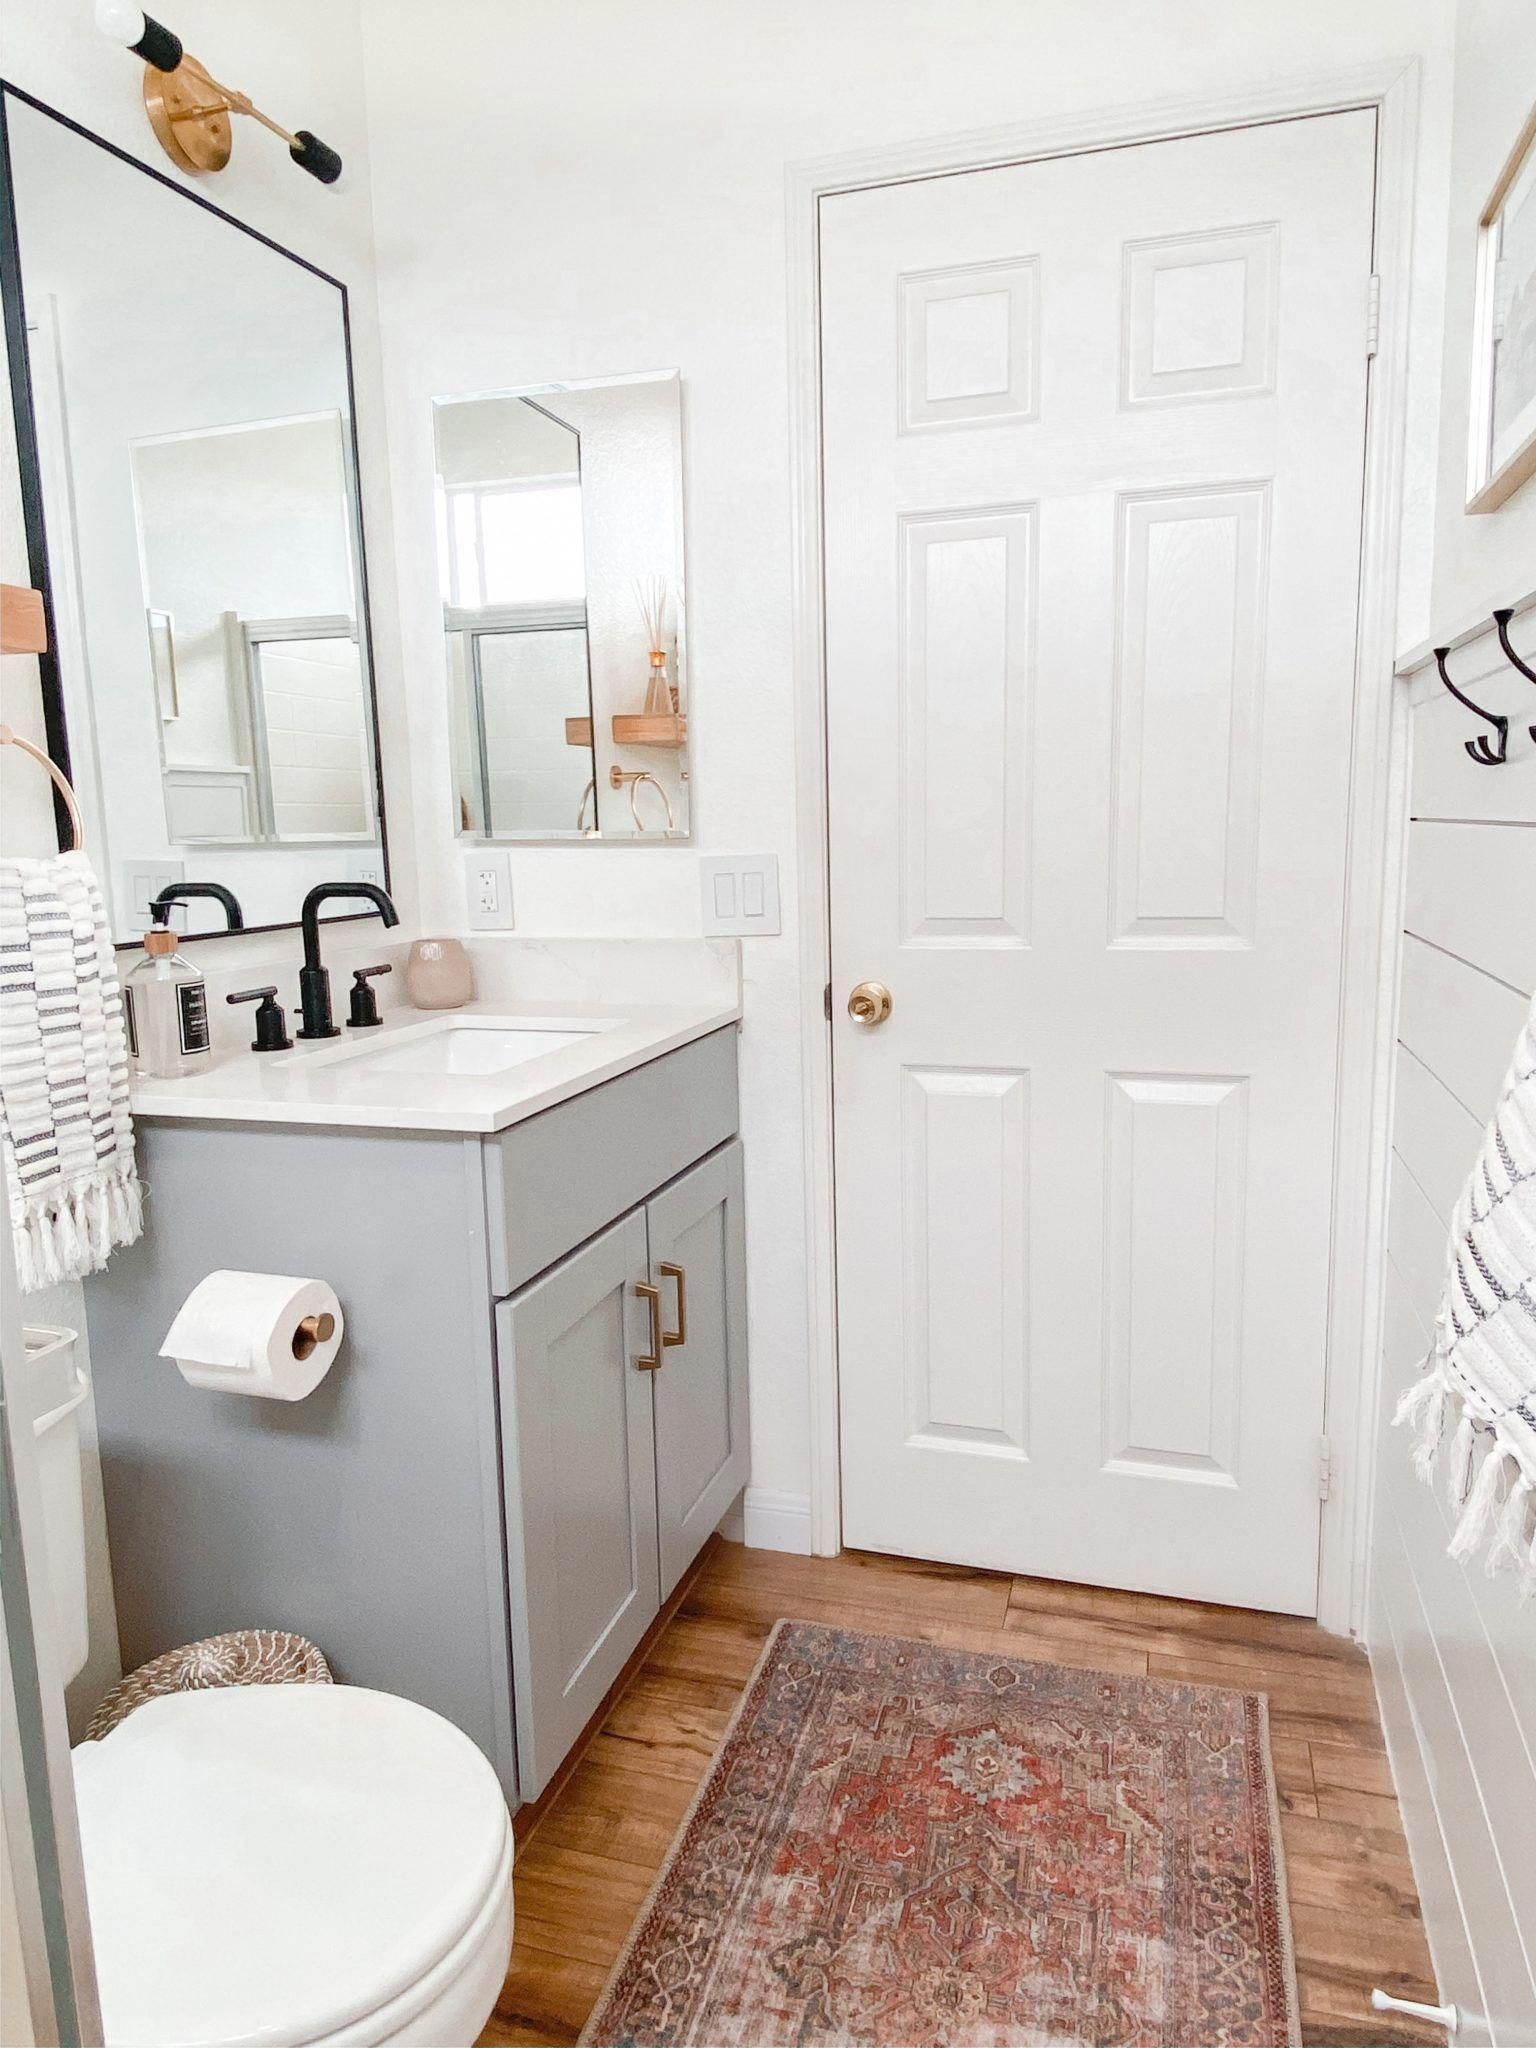 Small Bathroom Remodel Ideas: Befor and After | Domestic ... on Small Bathroom Ideas 2020 id=30407